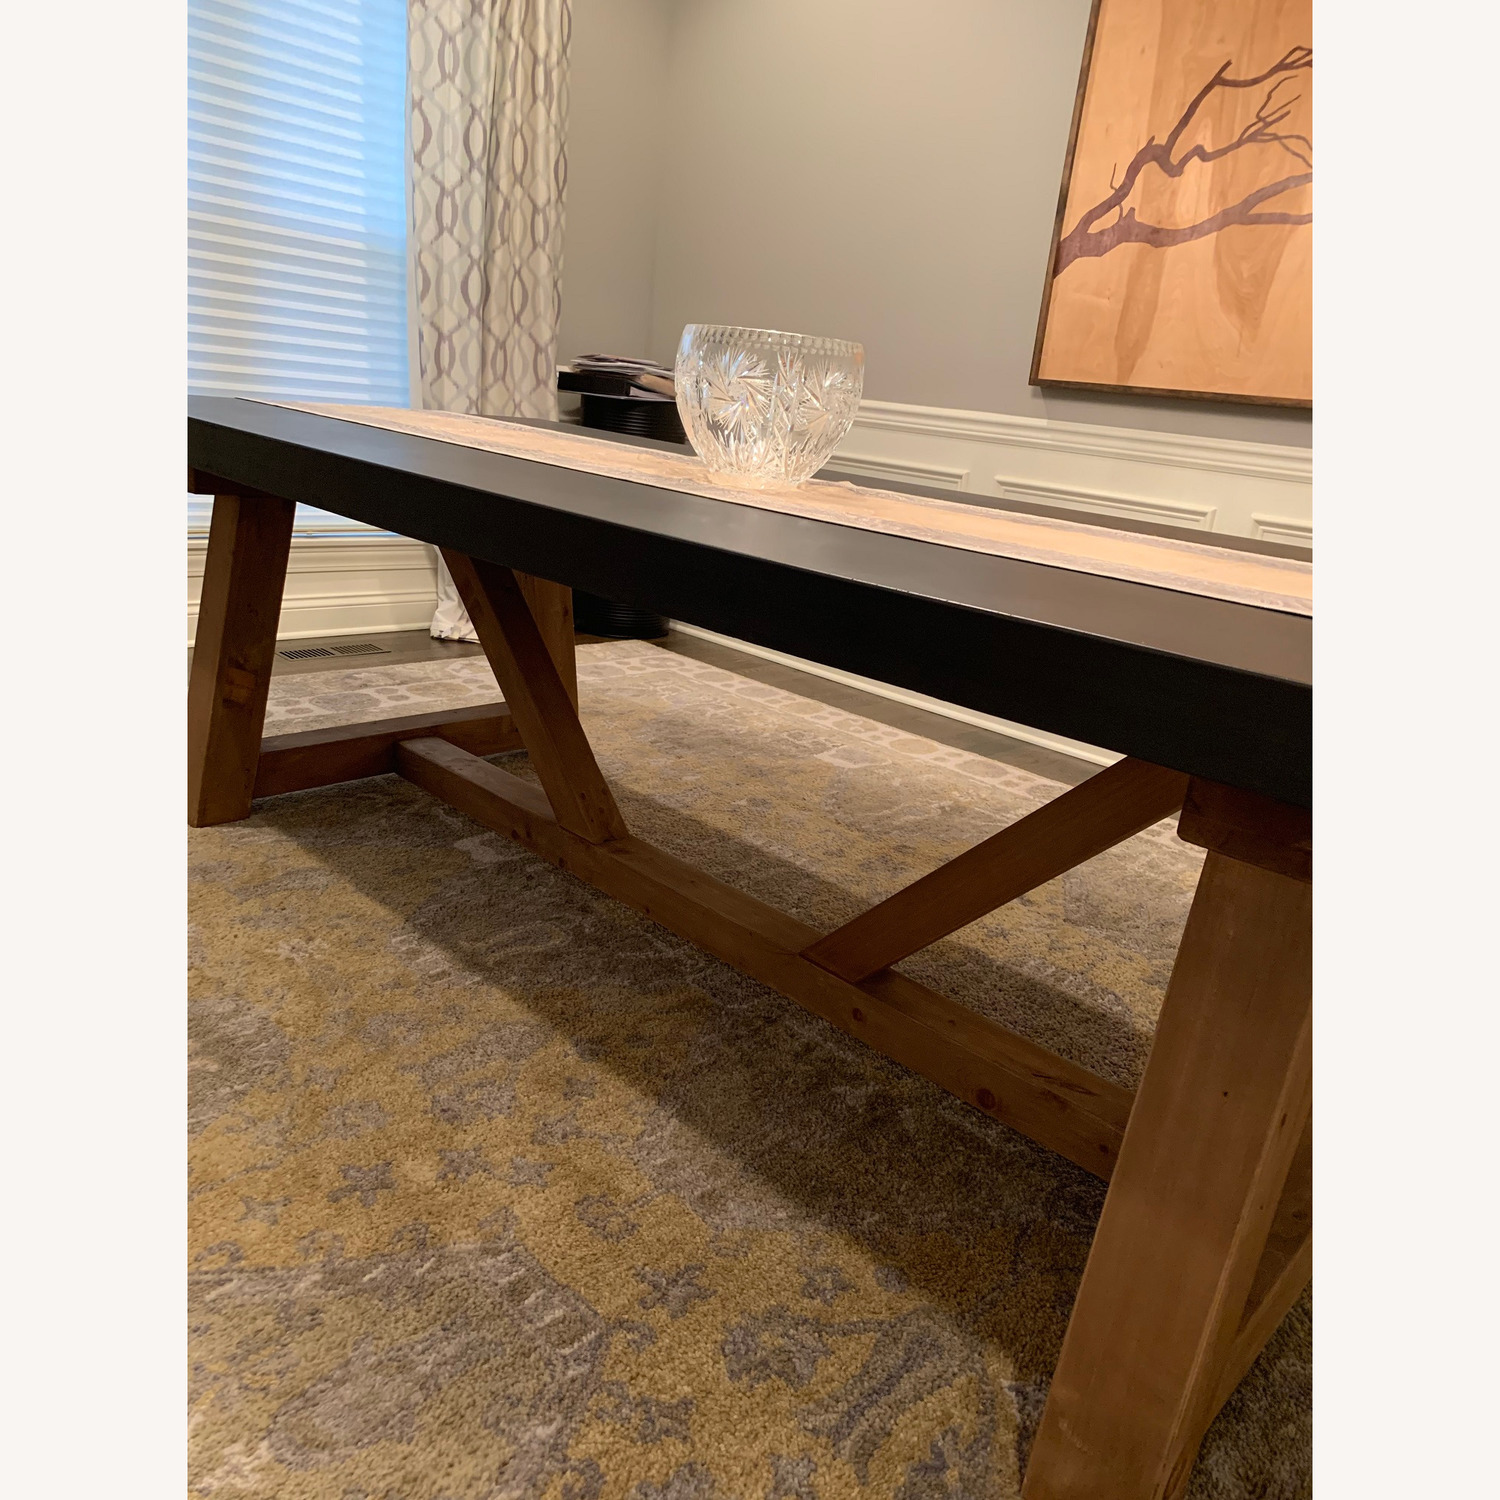 Restoration Hardware Salvaged Wood and Concrete Table - image-3